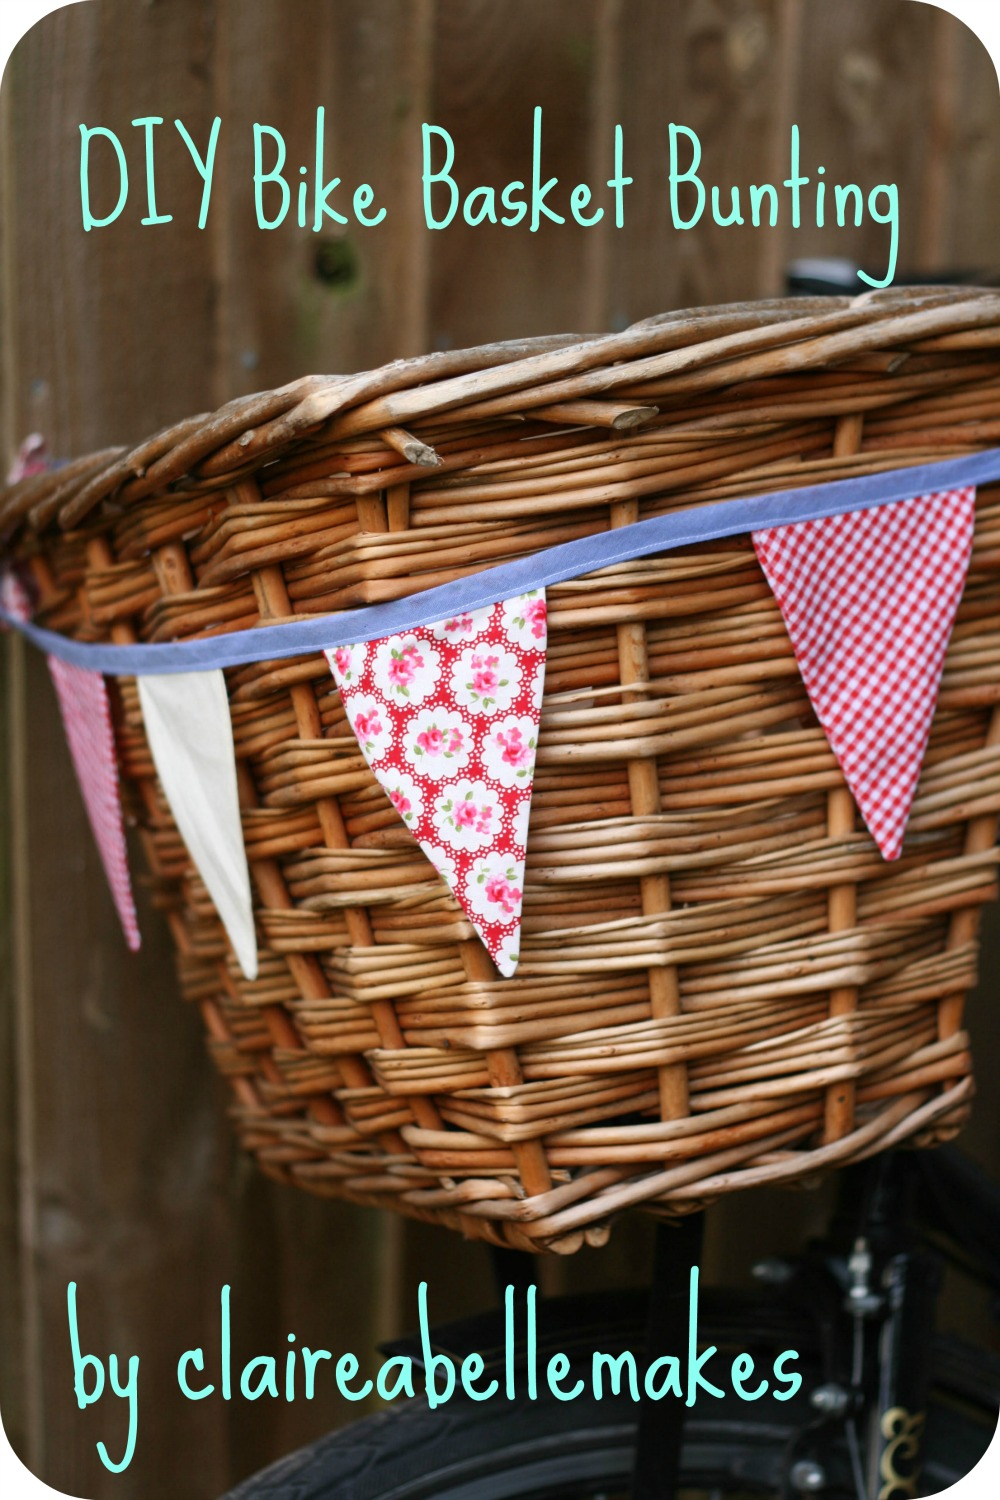 DIY Bike Basket Bunting by claireabellemakes